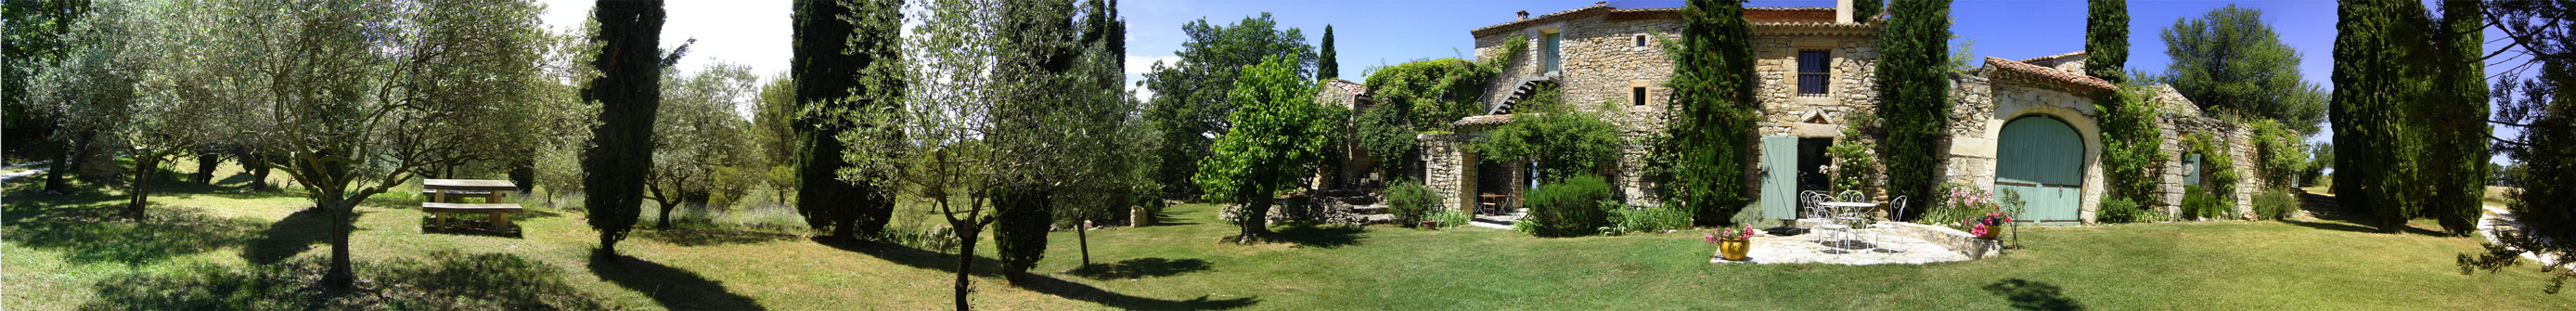 Photo panoramique du Mas Pellier et de son Parc arboré